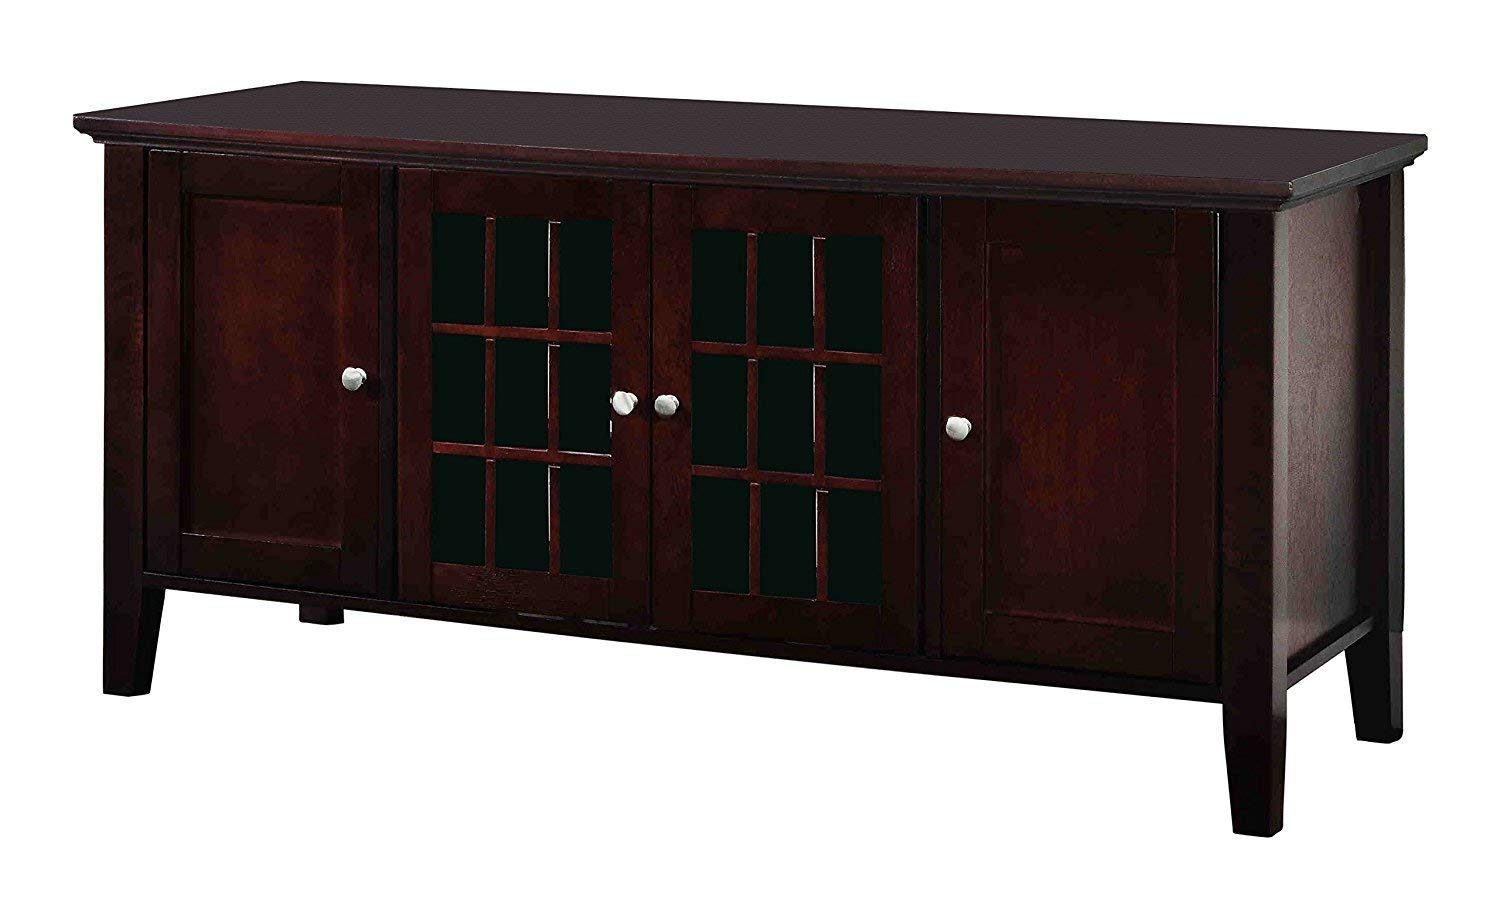 "Pilaster Designs Alexandria 54"" Dark Cherry Wood Transitional Entertainment Center Media Console TV Stand With Glass Cabinet Doors & Storage Shelves"